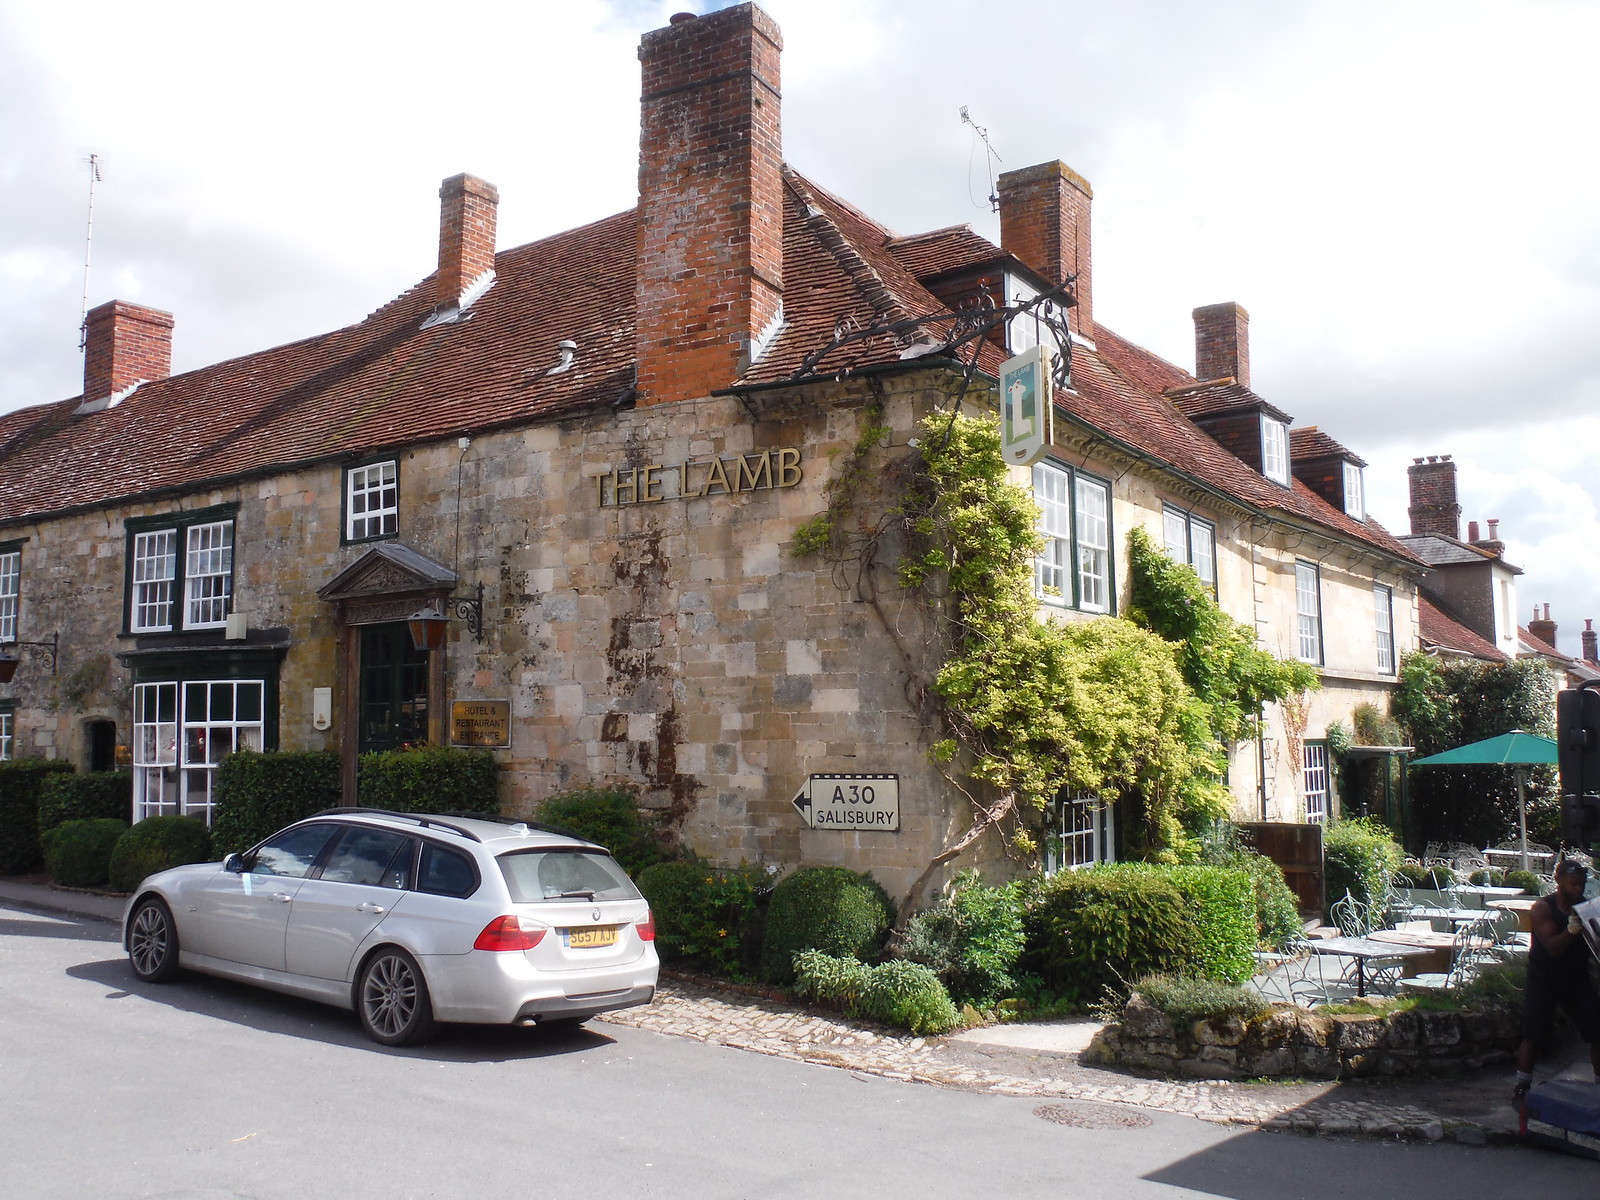 The Lamb Inn, Hindon SWC Walk 248 Tisbury Circular via Hindon